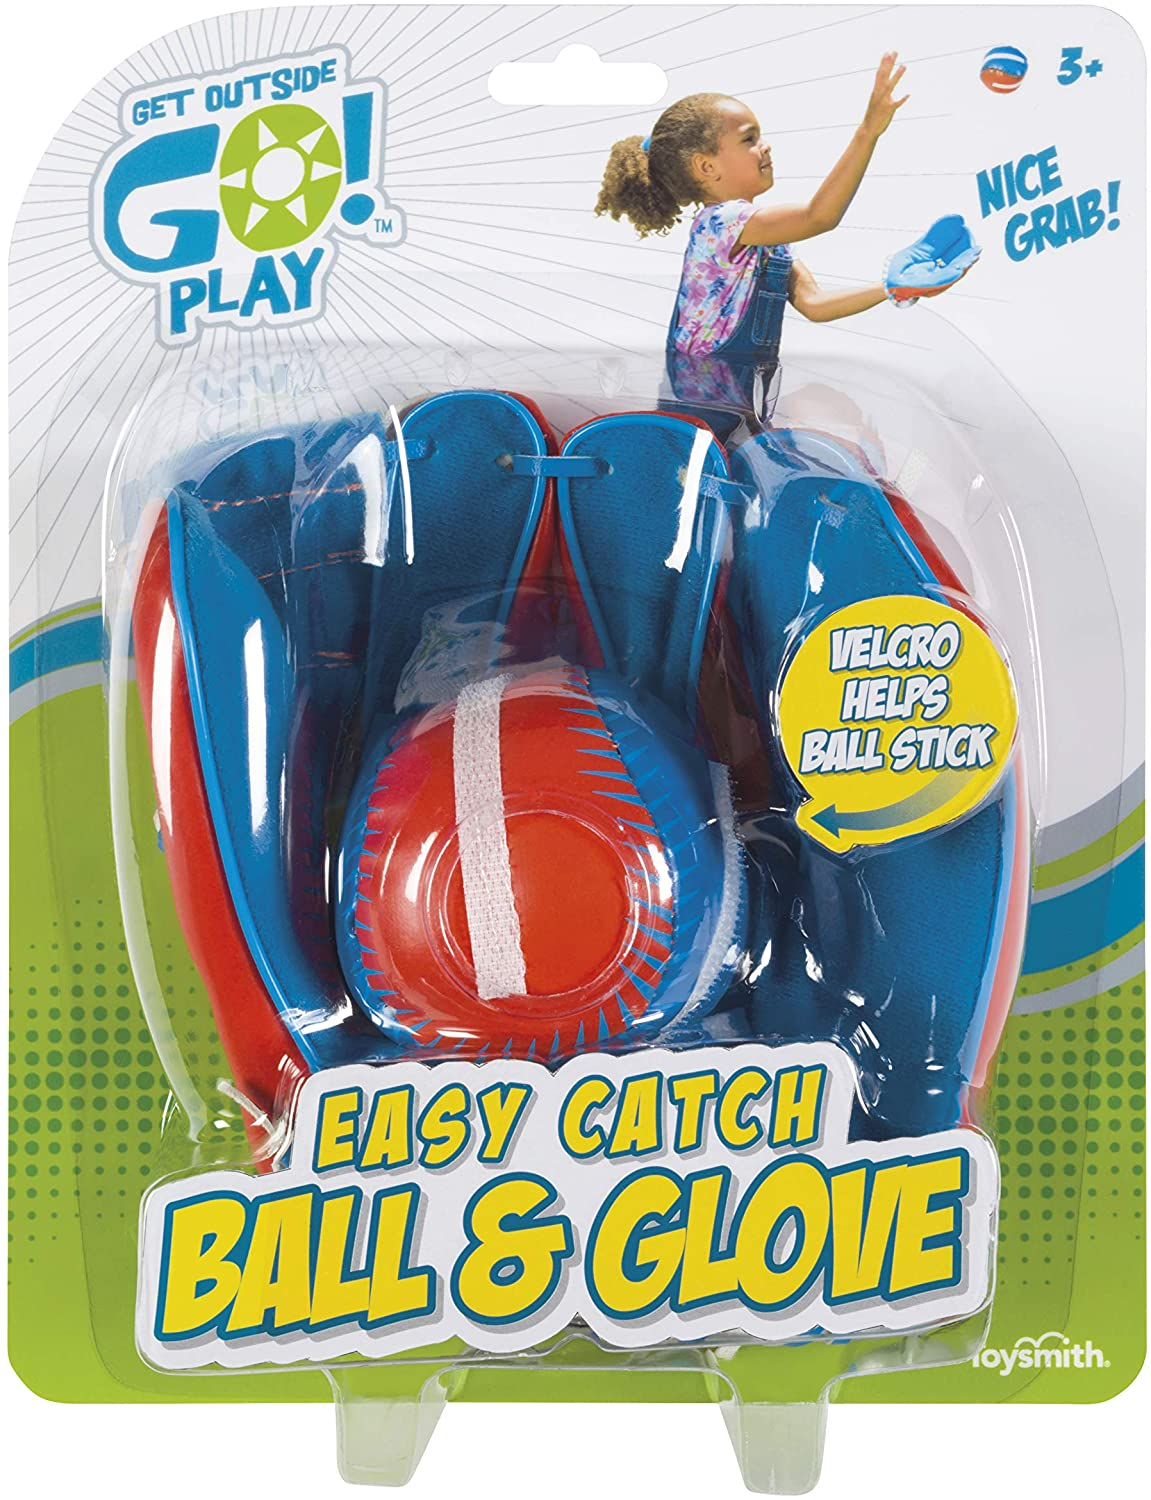 Get Outside Go! Easy Catch Ball & Glove Set Super Sport Outdoor Active Play Baseball by Toysmith (Packaging May Vary): Toys & Games